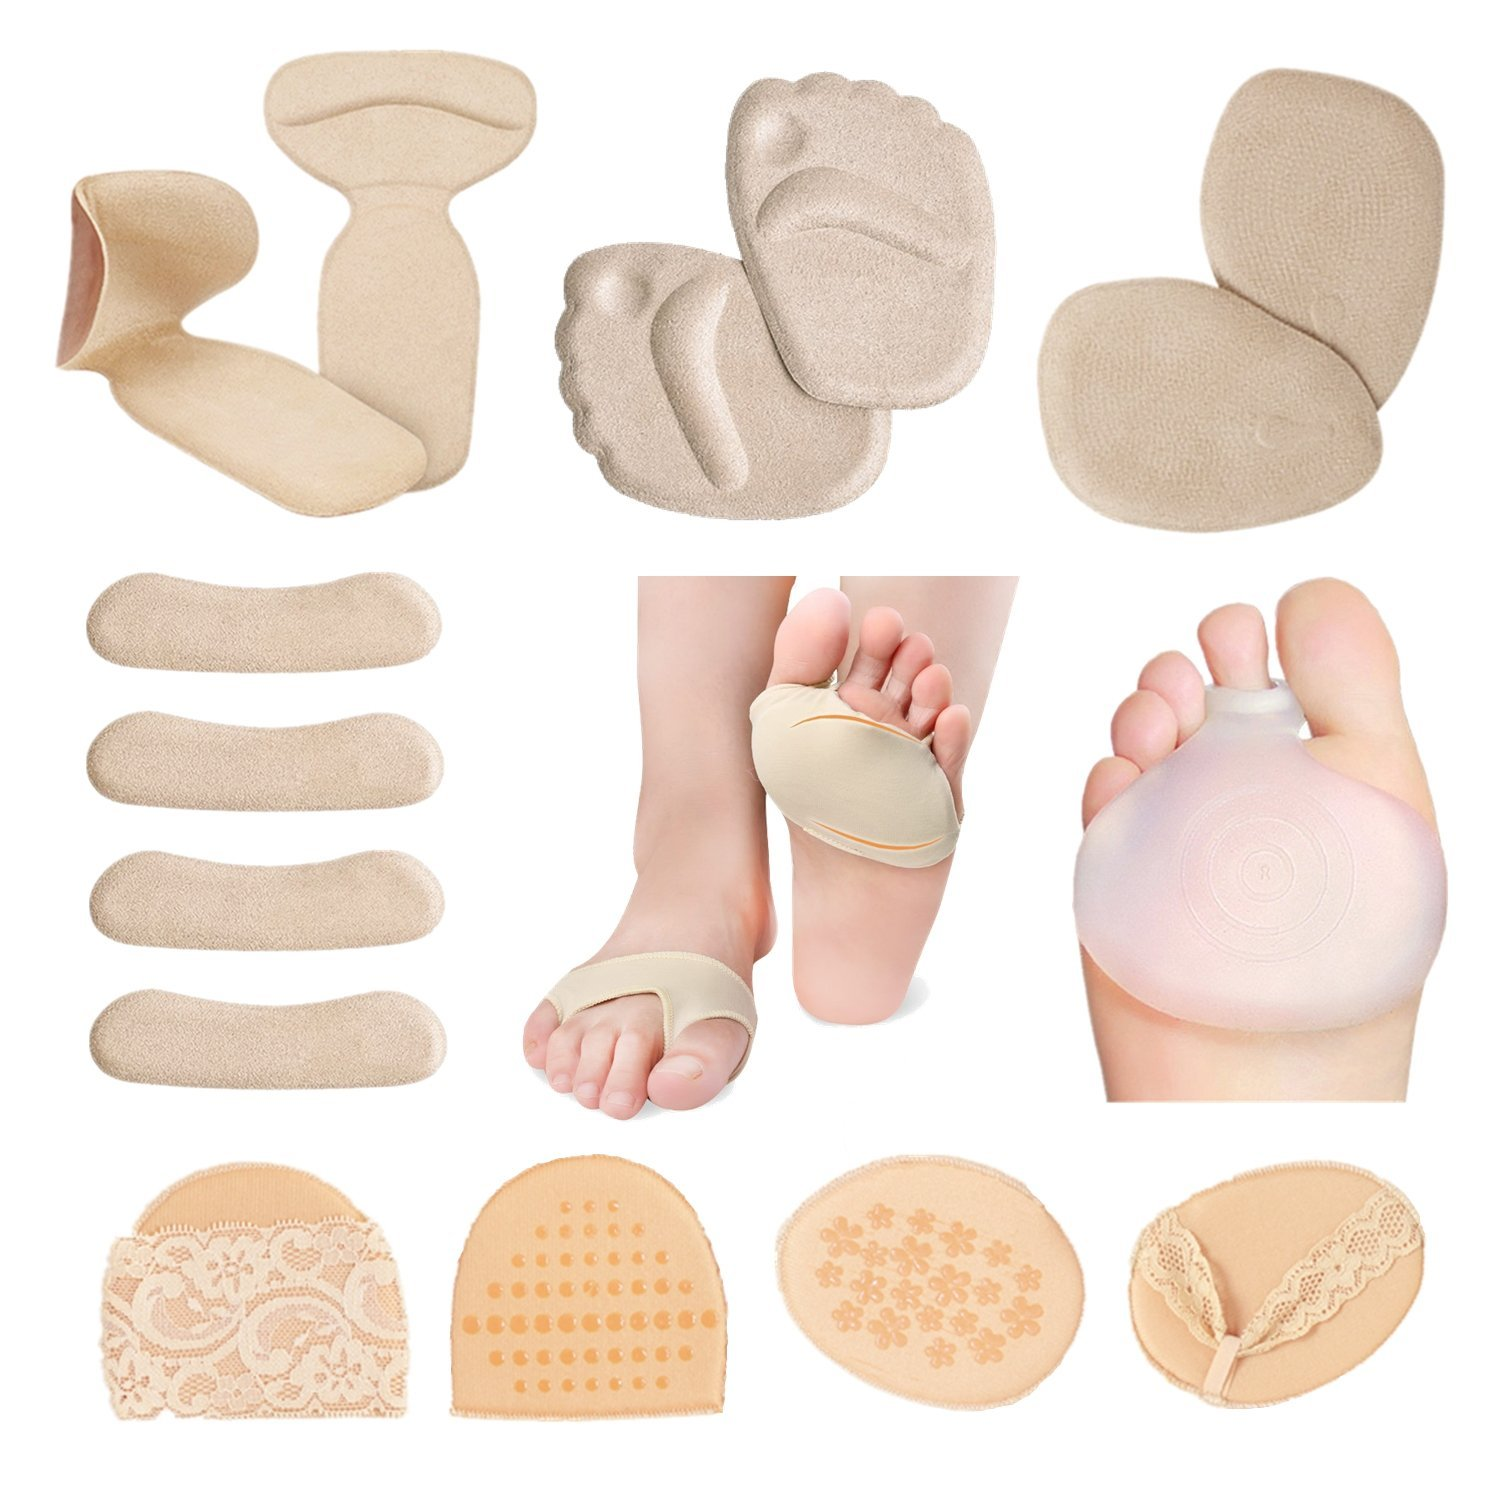 ROLISA High Heel Cushion Inserts Heel Grips Liner Ball of Foot & Metatarsal Pads, Foot Care Package 18 pcs